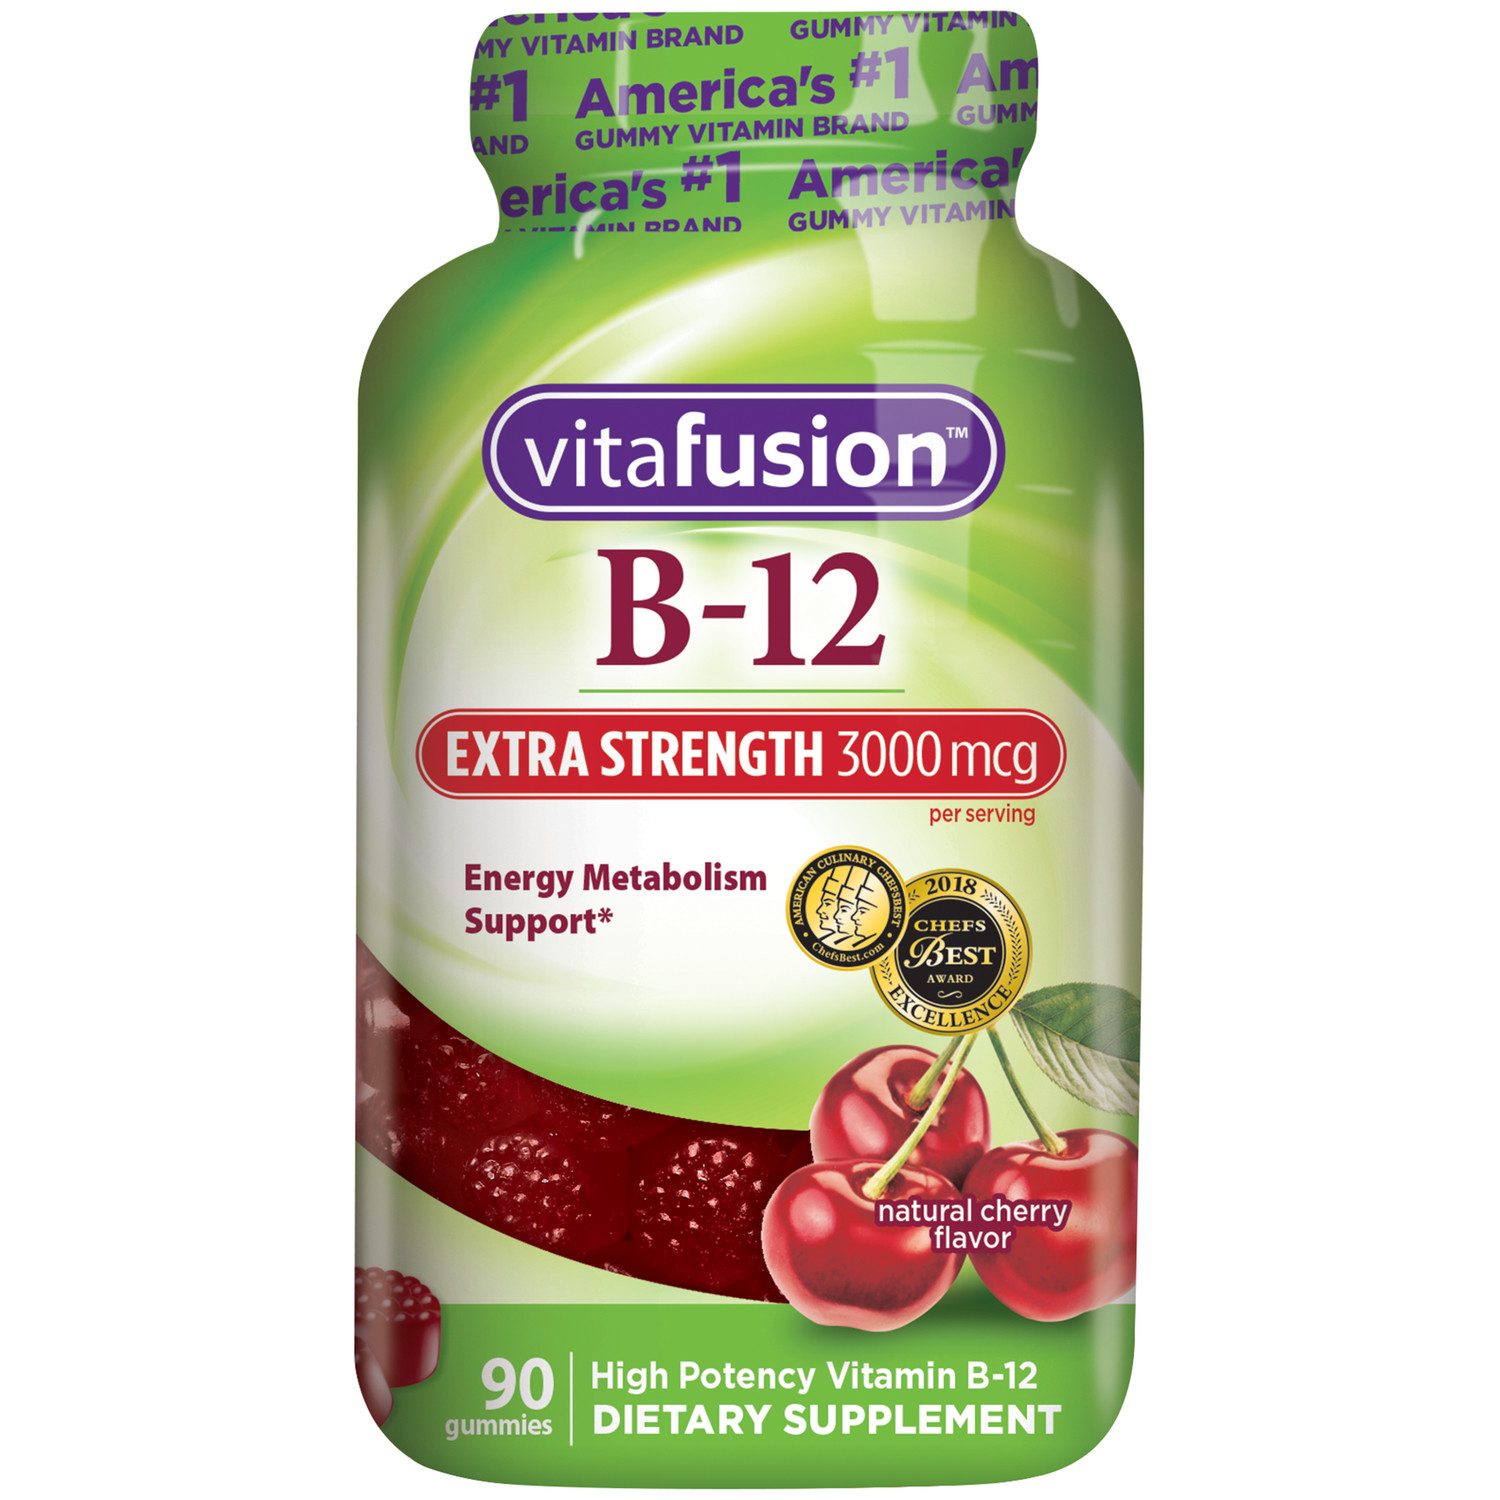 Vitafusion Extra Strength Vitamin B12 Dietary Supplement Gummies